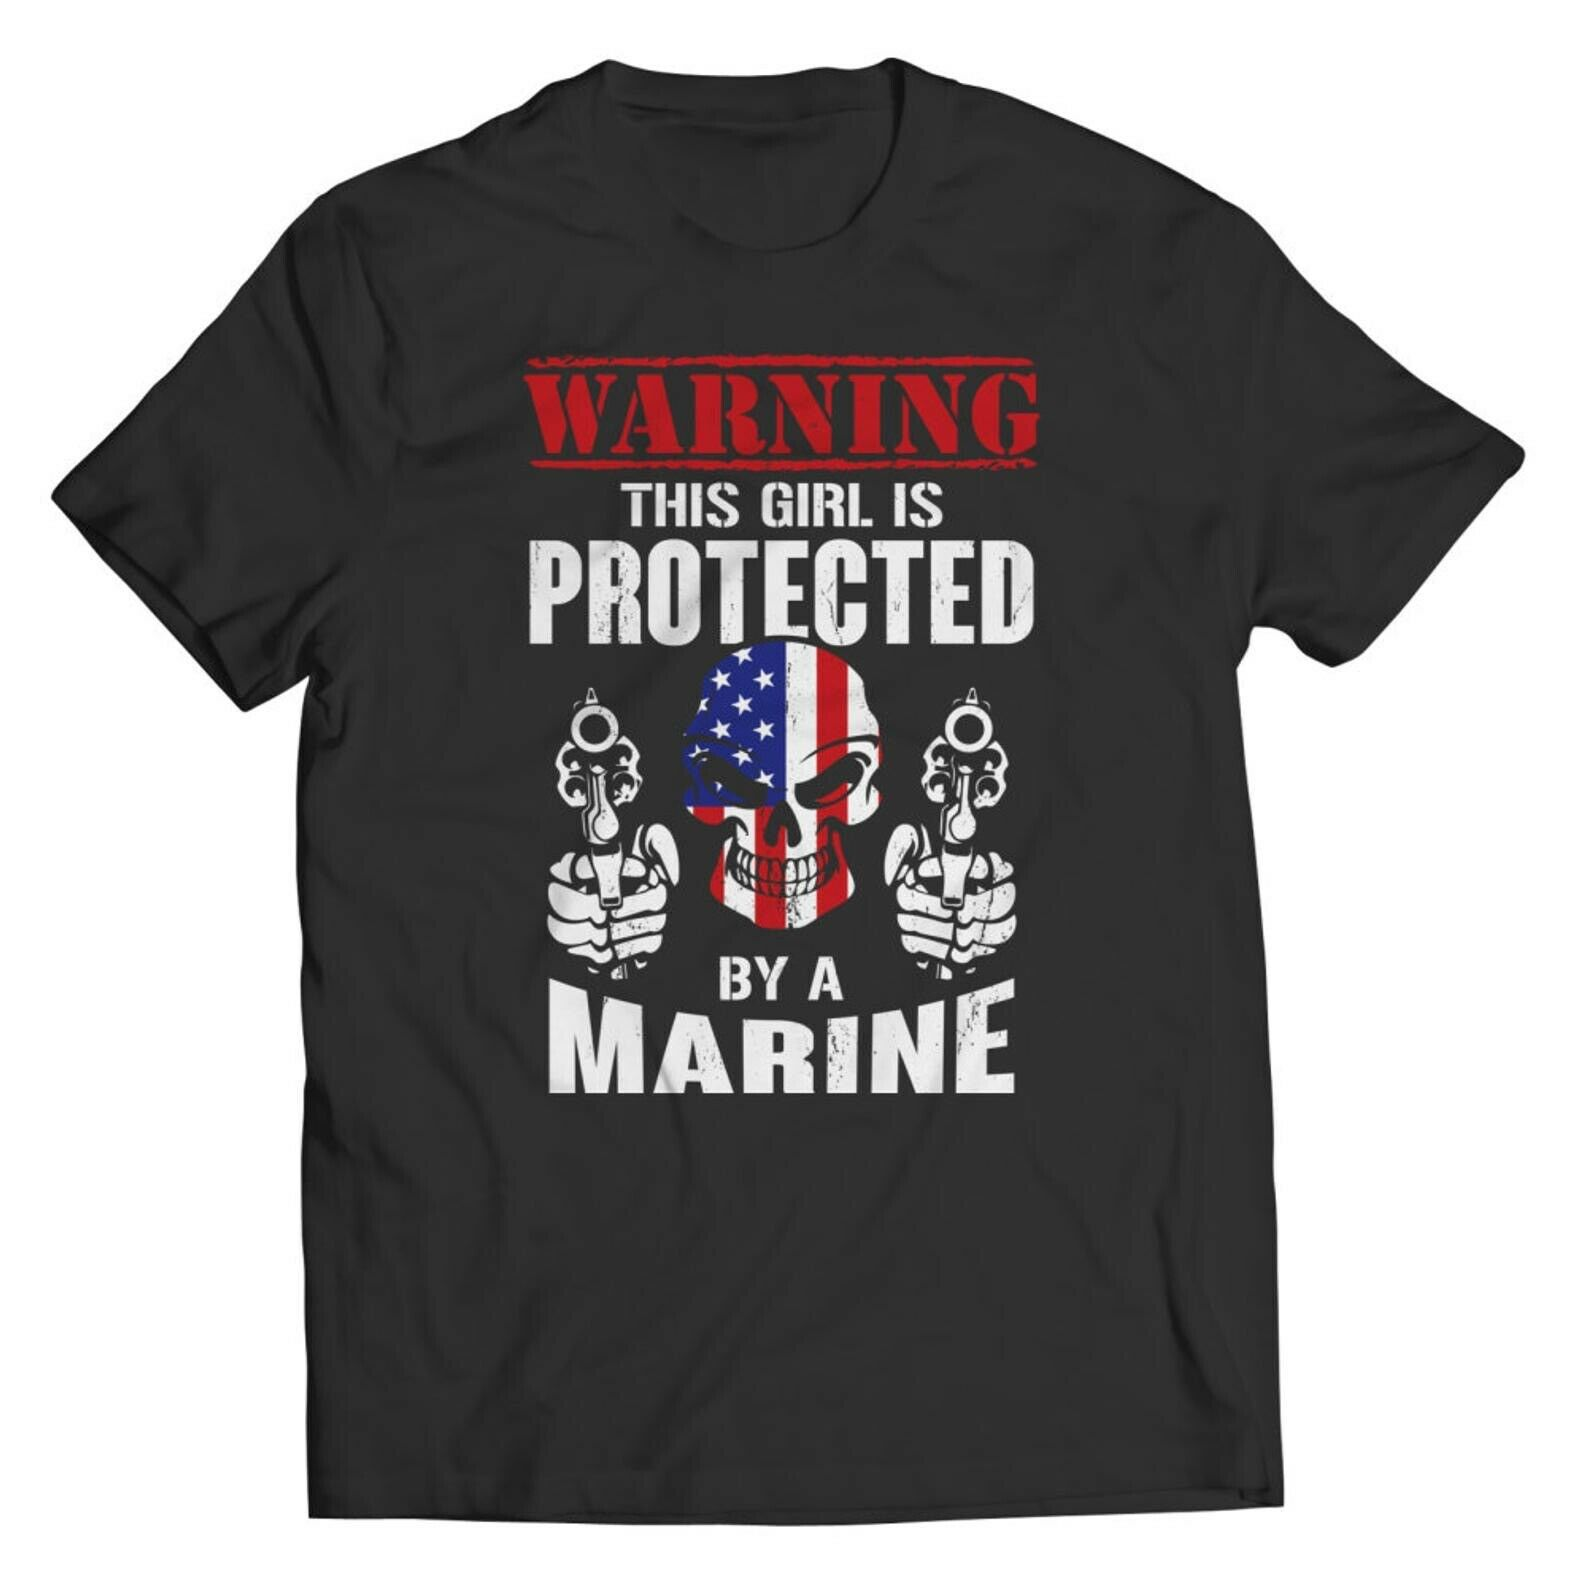 sorry ladies this guy is taken boyfriend t shirt relationship gifts for him anniversary t shirt gift from girlfriend Warning This Girl is Protected by a Marine Men T-Shirt Gift For Marines Shirt S-3XL